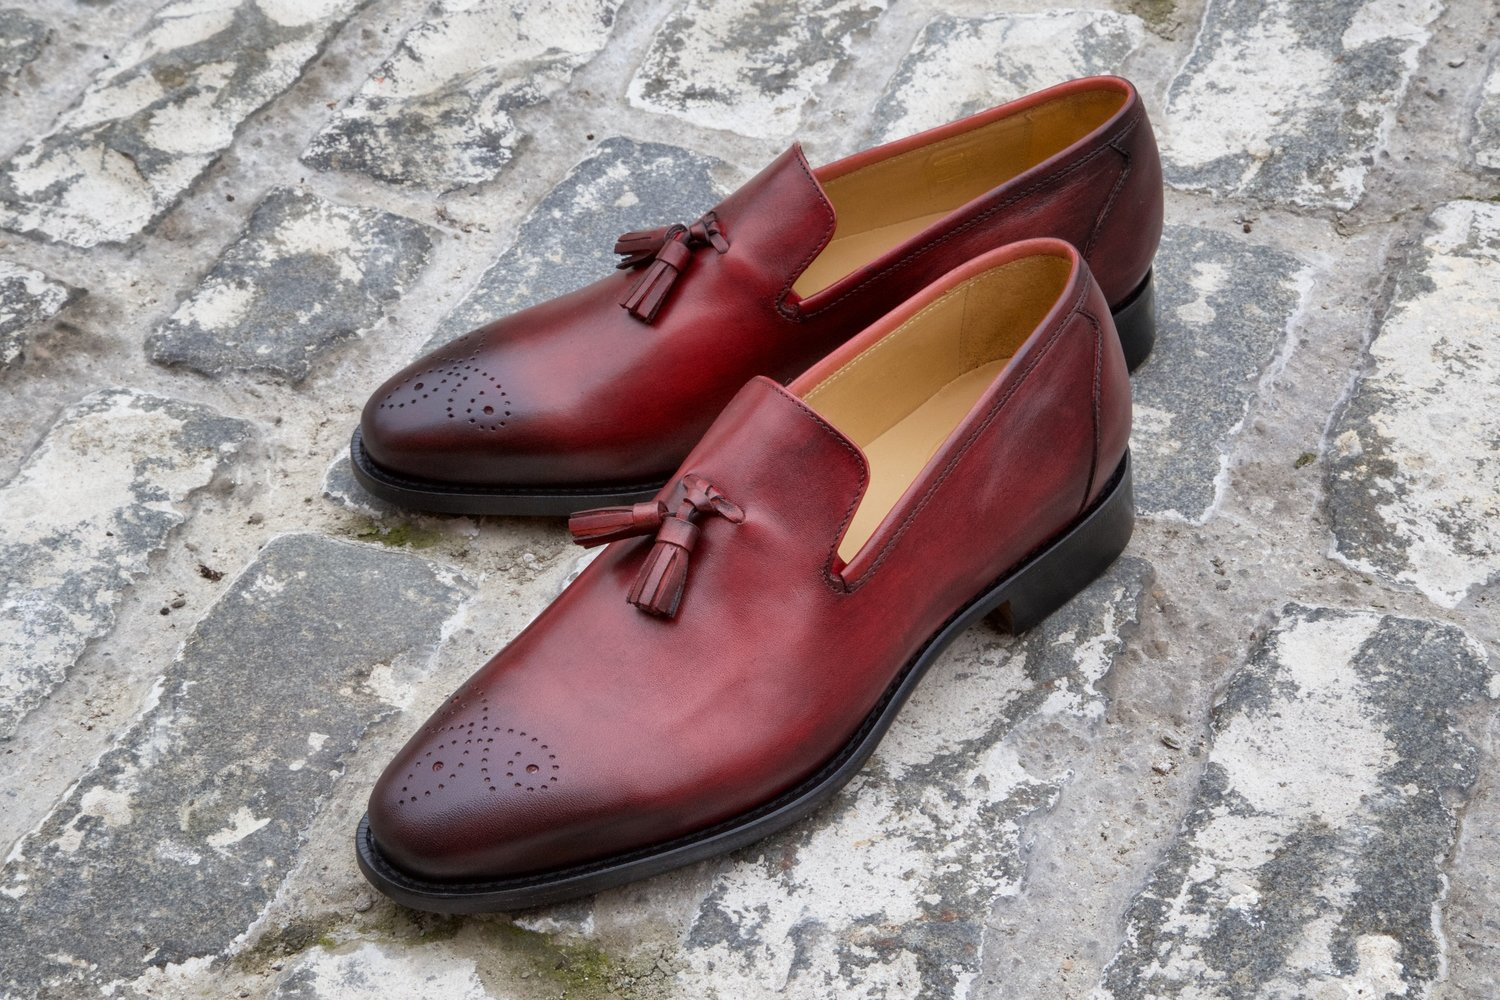 Mr. Devon: Oxblood